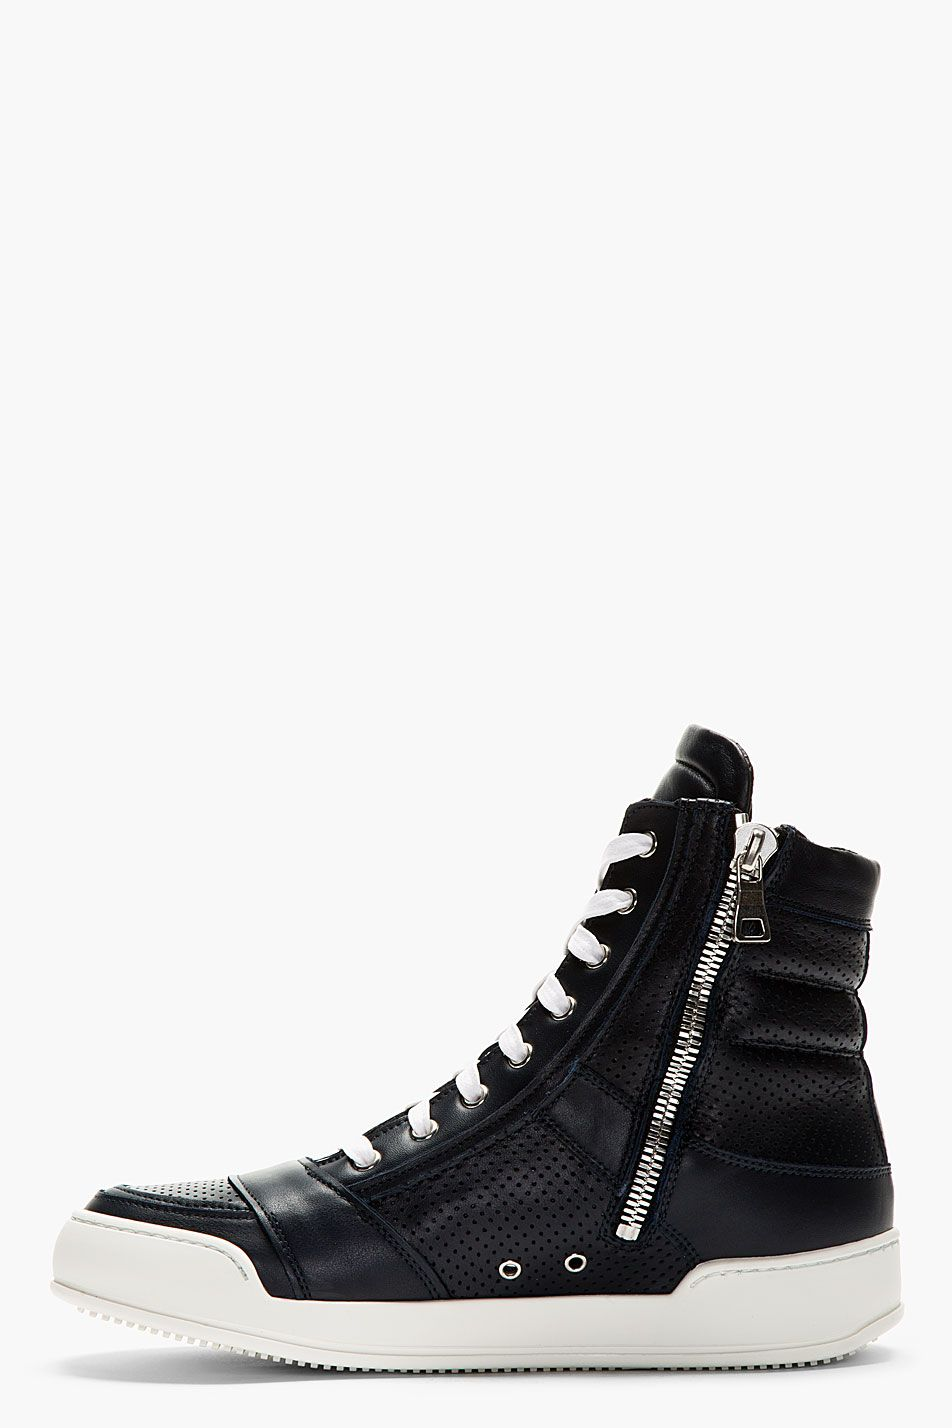 best sneakers ddd05 dfba7 BALMAIN Navy Perforated High-Top Sneakers. Find this Pin and more on cool  shoes ...